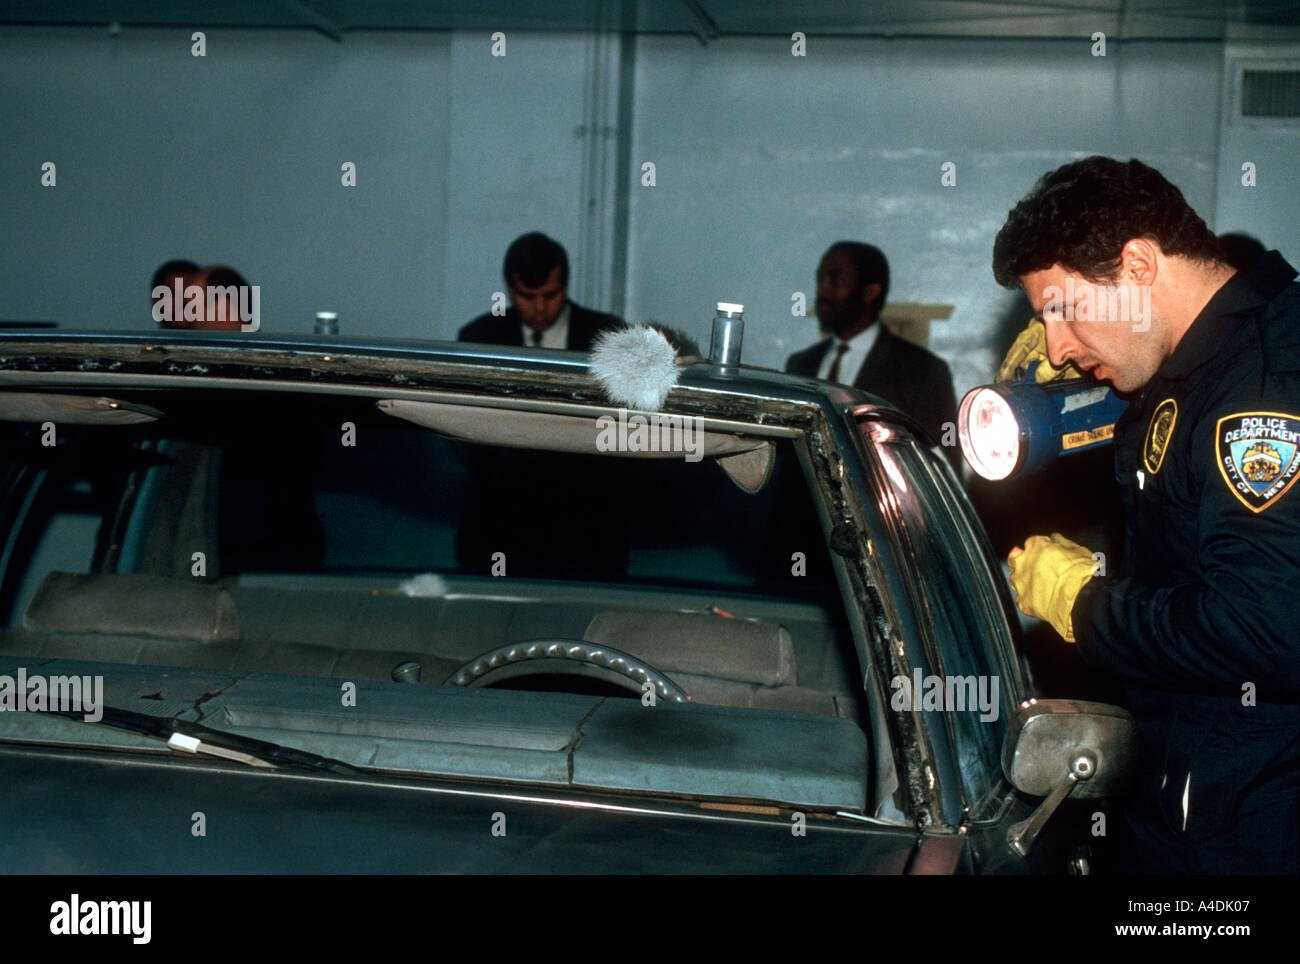 Members of the NYPD Crime Scene Unit investigate the automobile used by Rashid Baz to shoot a van load of yeshiva students on the Brooklyn Bridge - Stock Image